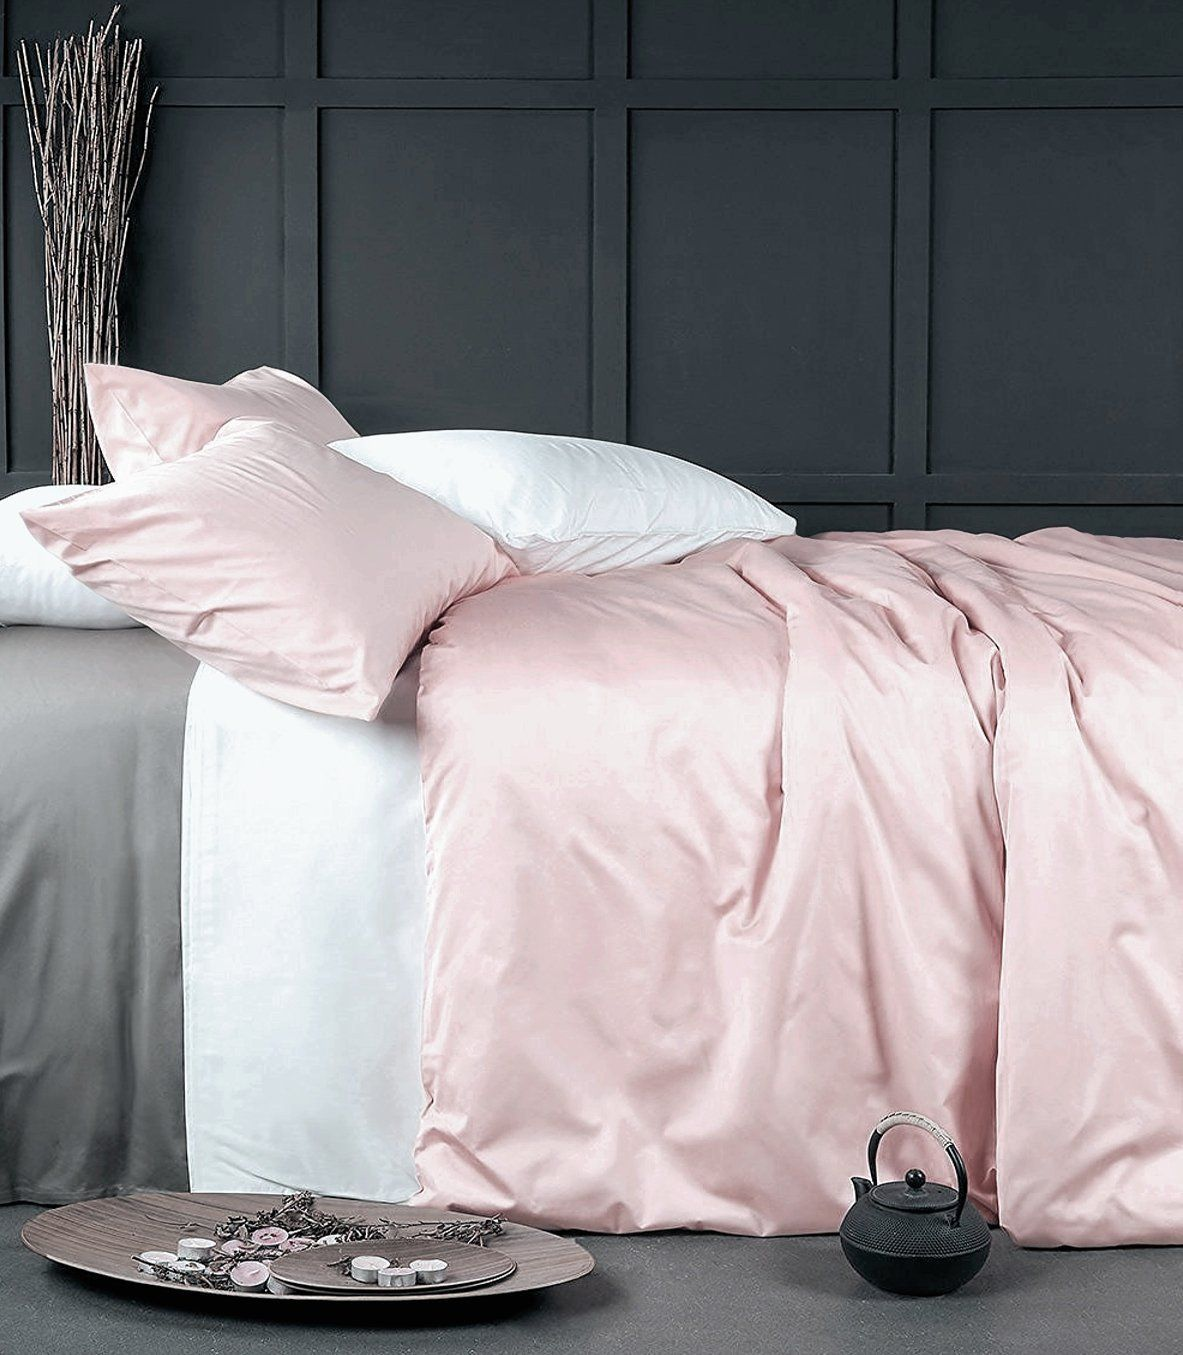 solid rose gold or dusty rose pale pink bedding duvet quilt cover set by designer eikei home beautiful dusty rose color very light pale pastel pink that